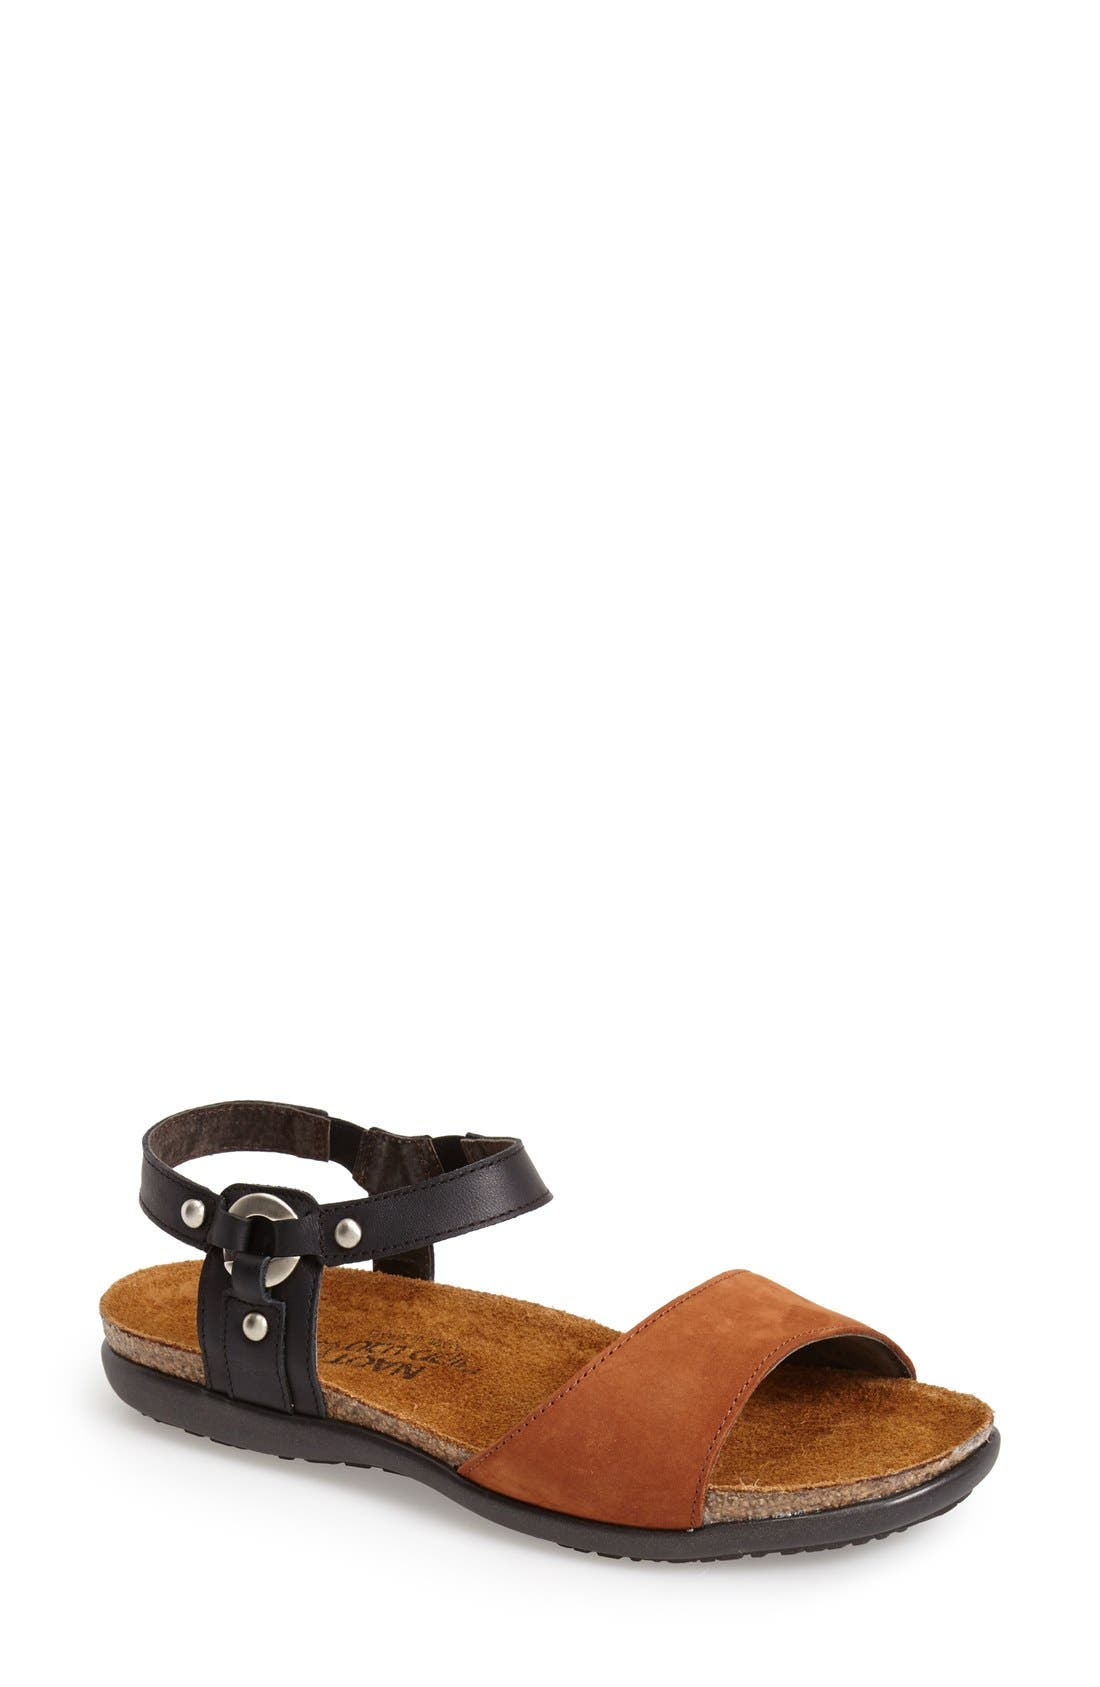 'Sabrina' Sandal,                             Main thumbnail 1, color,                             BLACK/ BROWN